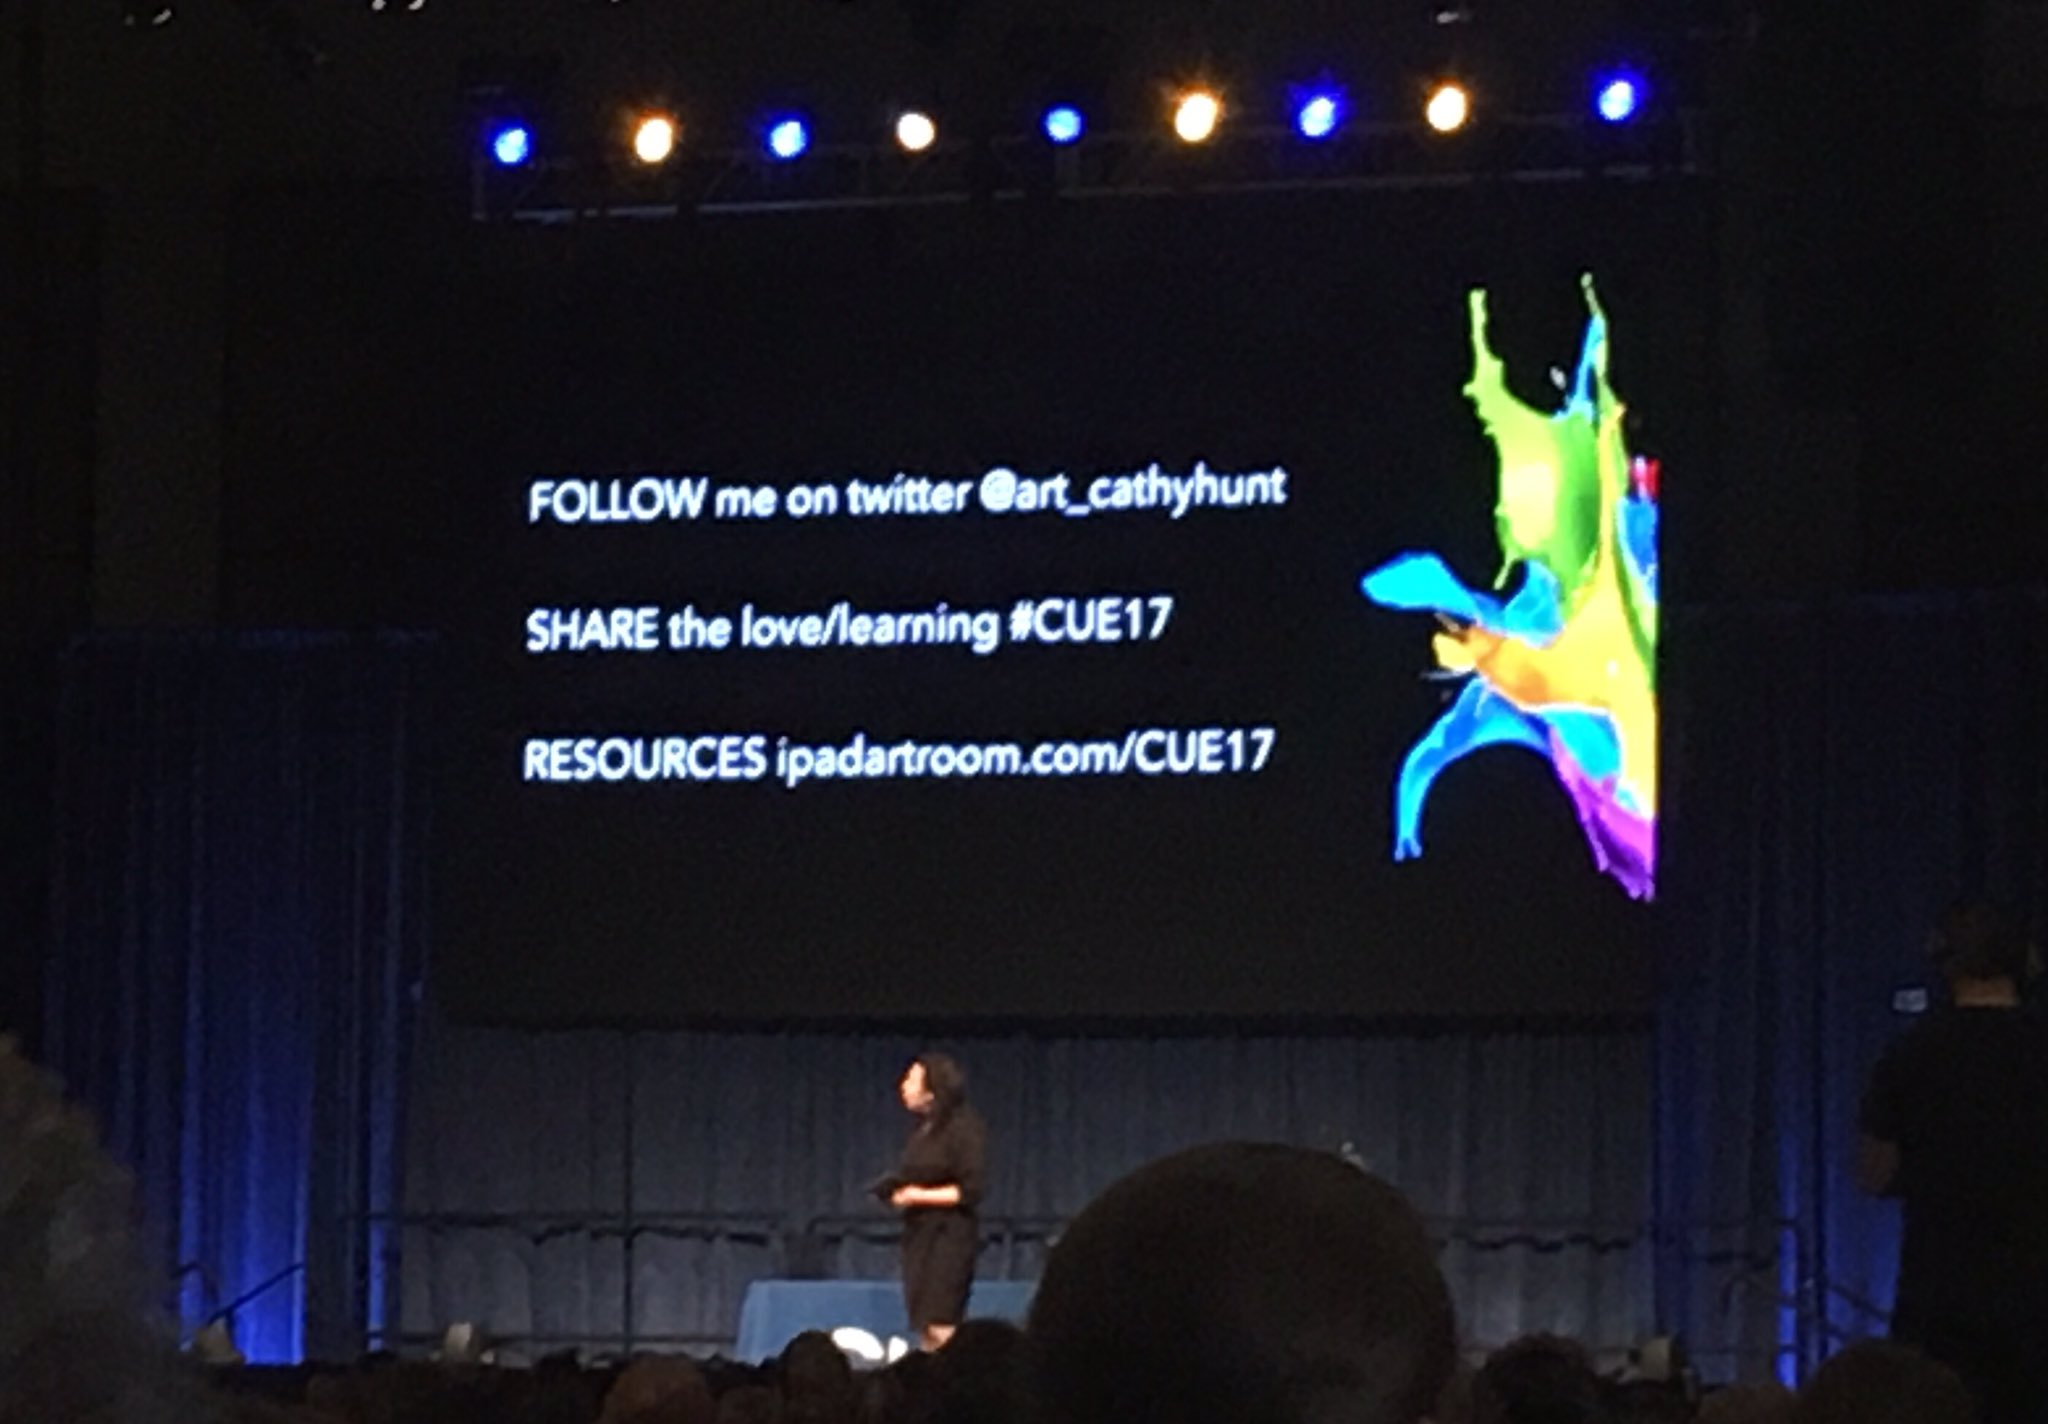 Couldn't make it to the closing keynote with @art_cathyhunt ? Here is the URL to access her resources! #CUE17 @Cre8ingArtNC14 https://t.co/24j8PZwbgh